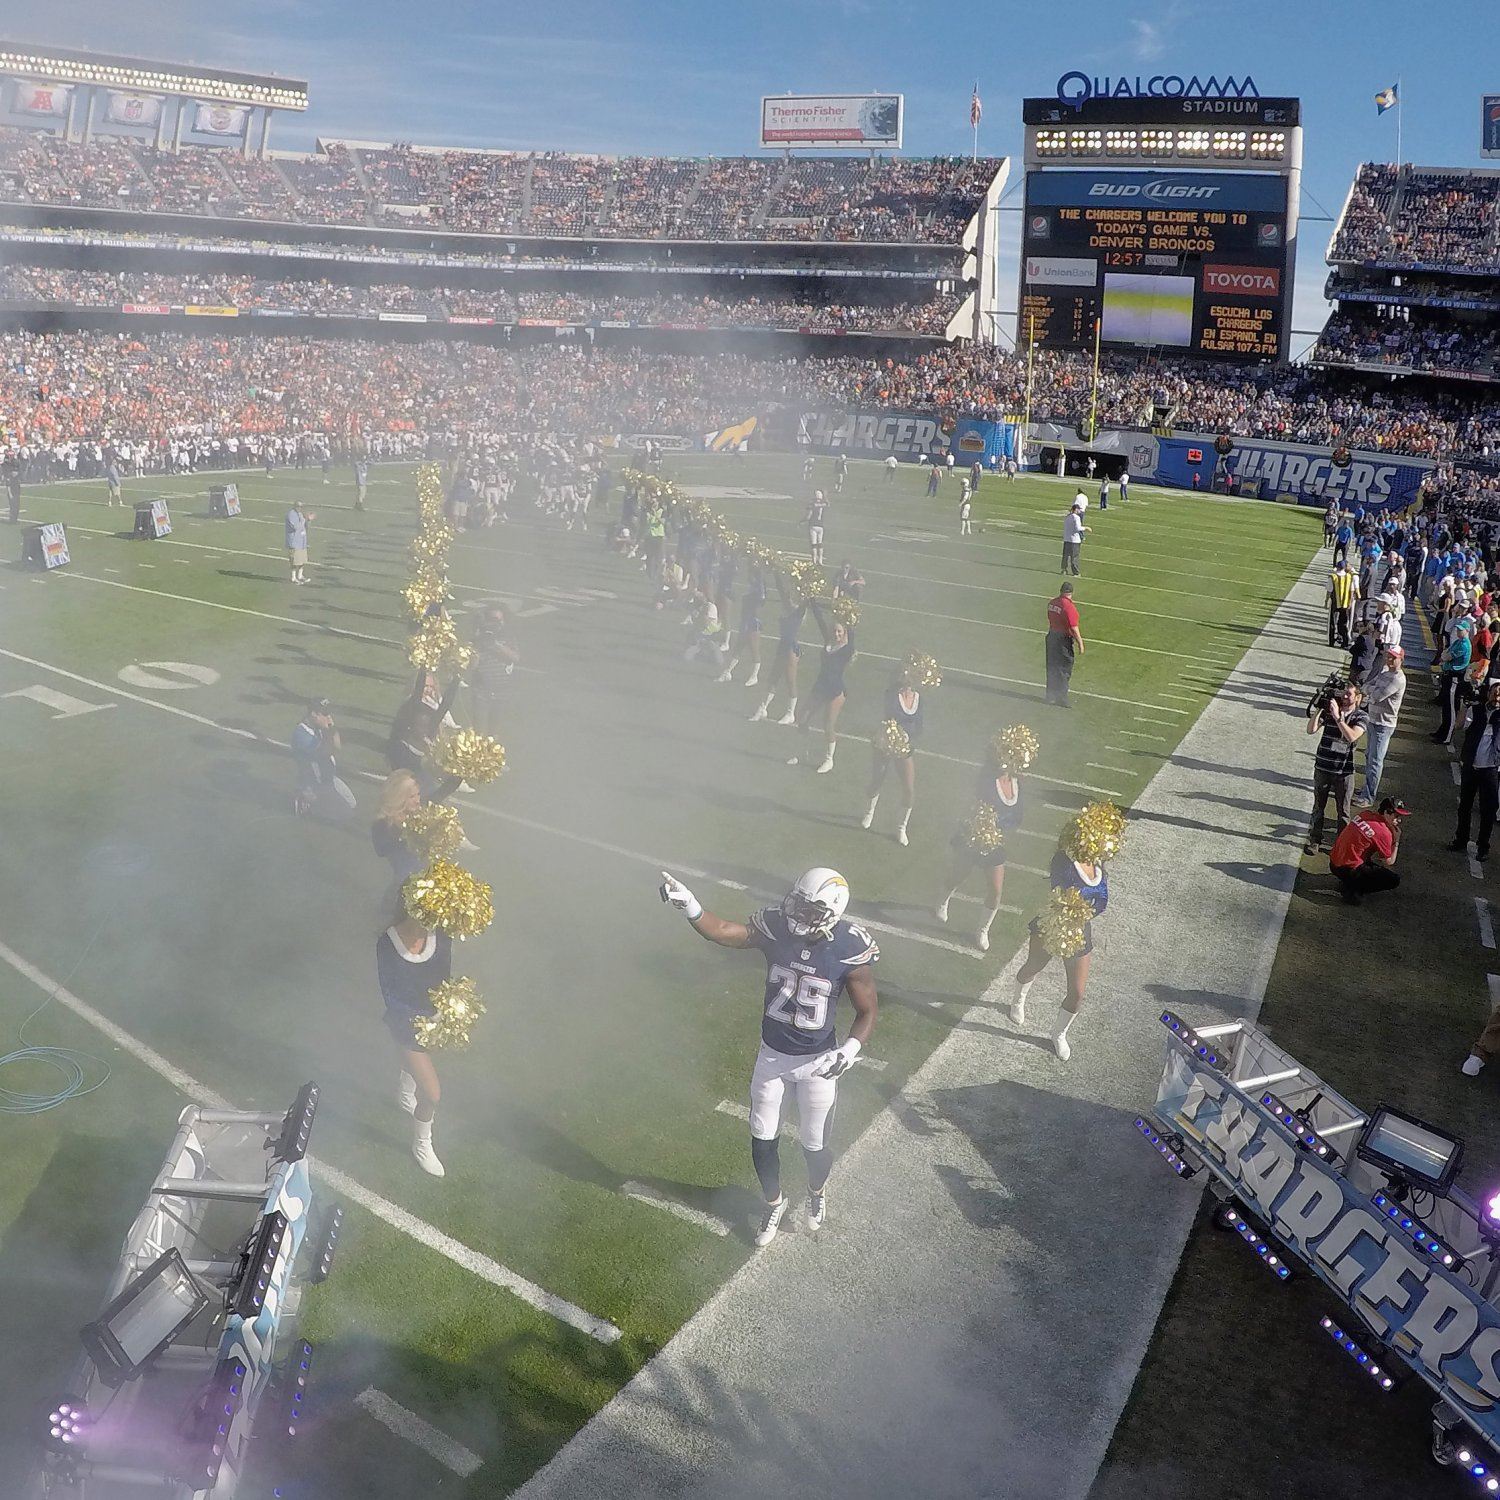 San Diego Chargers Football Field: San Diego Chargers New Stadium: Latest Details, Photos And